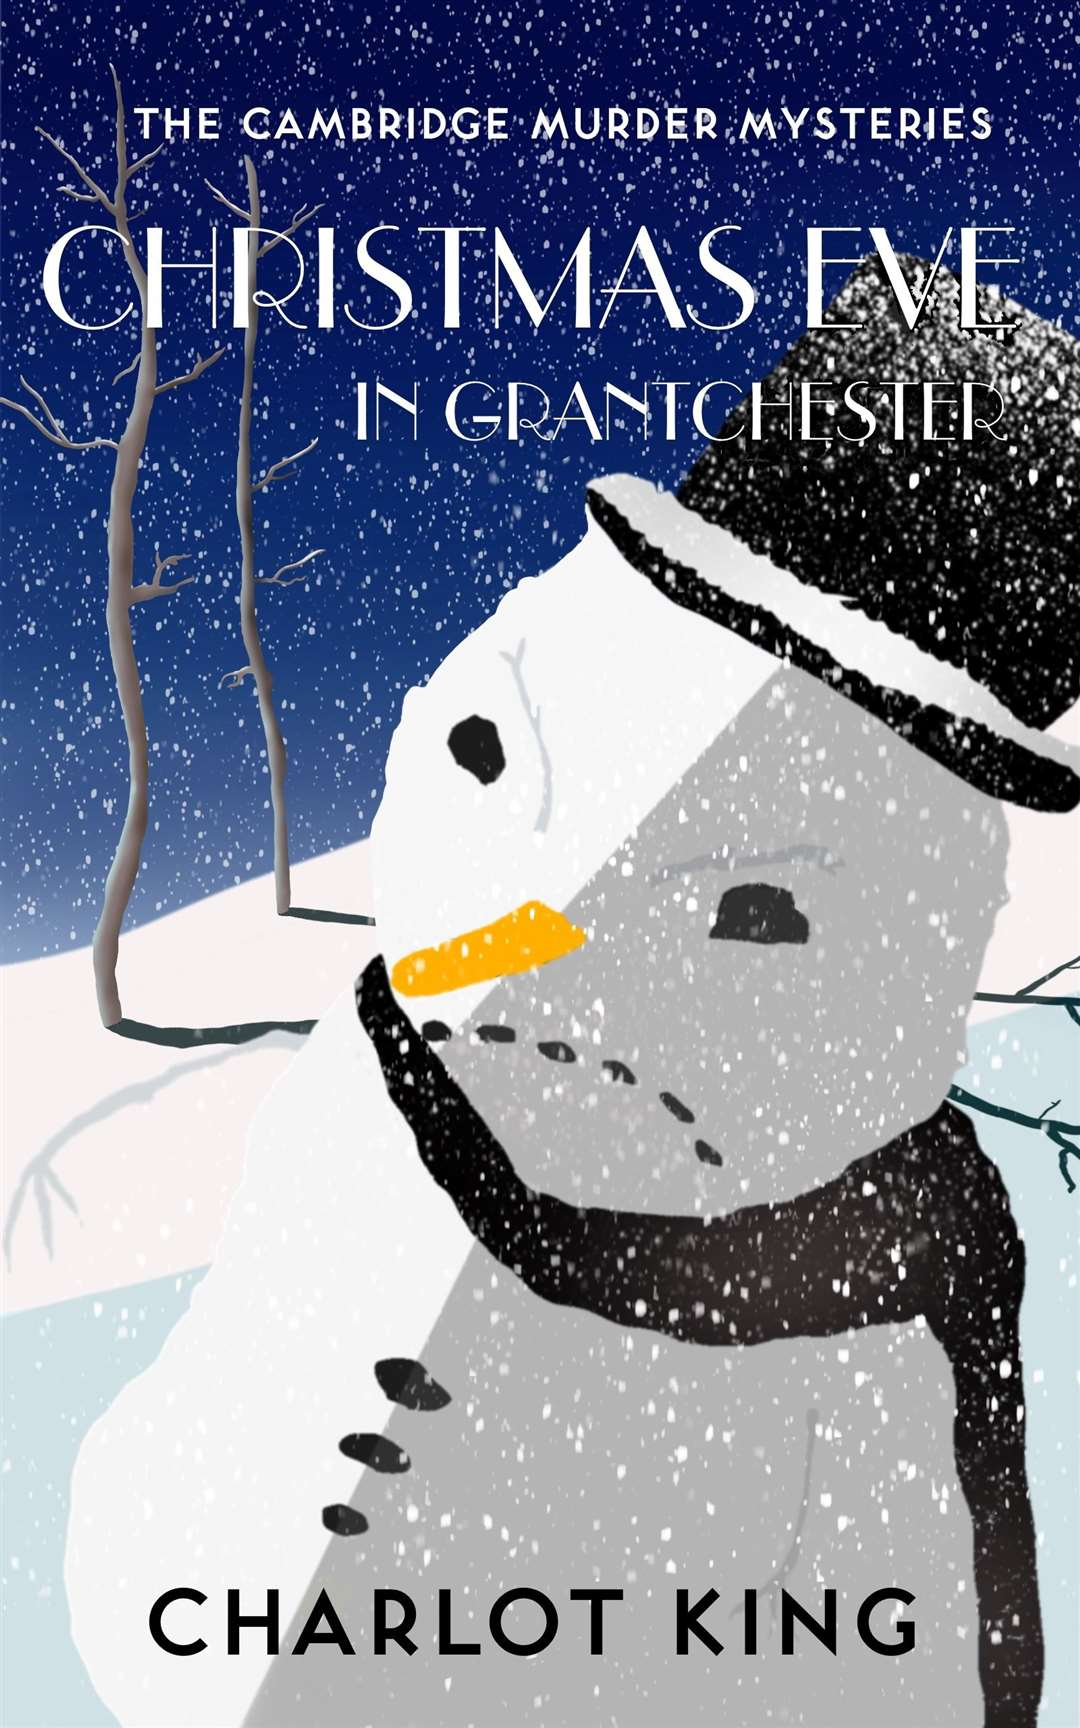 Christmas Eve in Grantchester, by Cambridge author Charlot King.